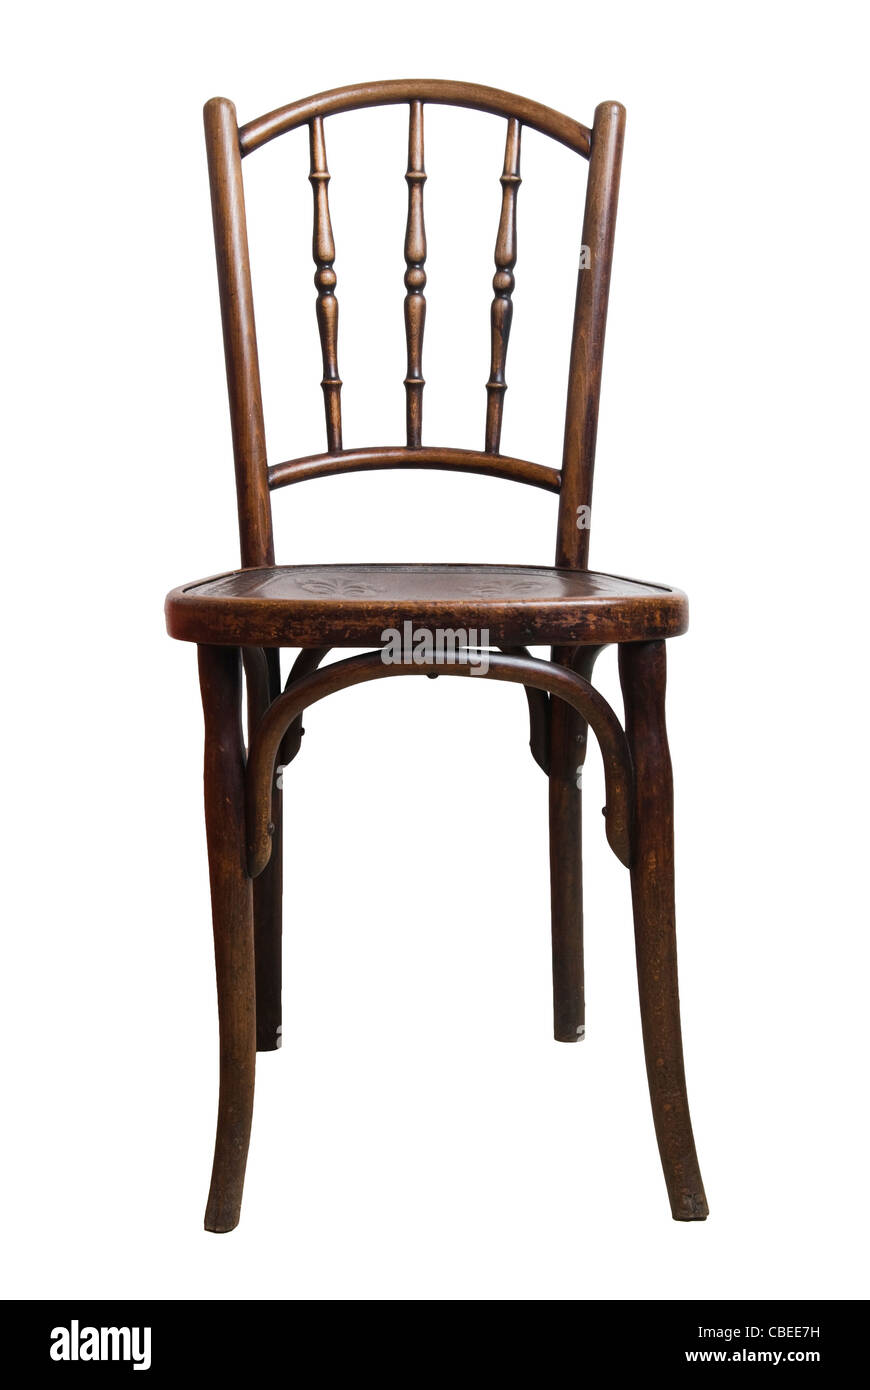 Chaises Thonet à Vendre Thonet Chair Photos Thonet Chair Images Alamy